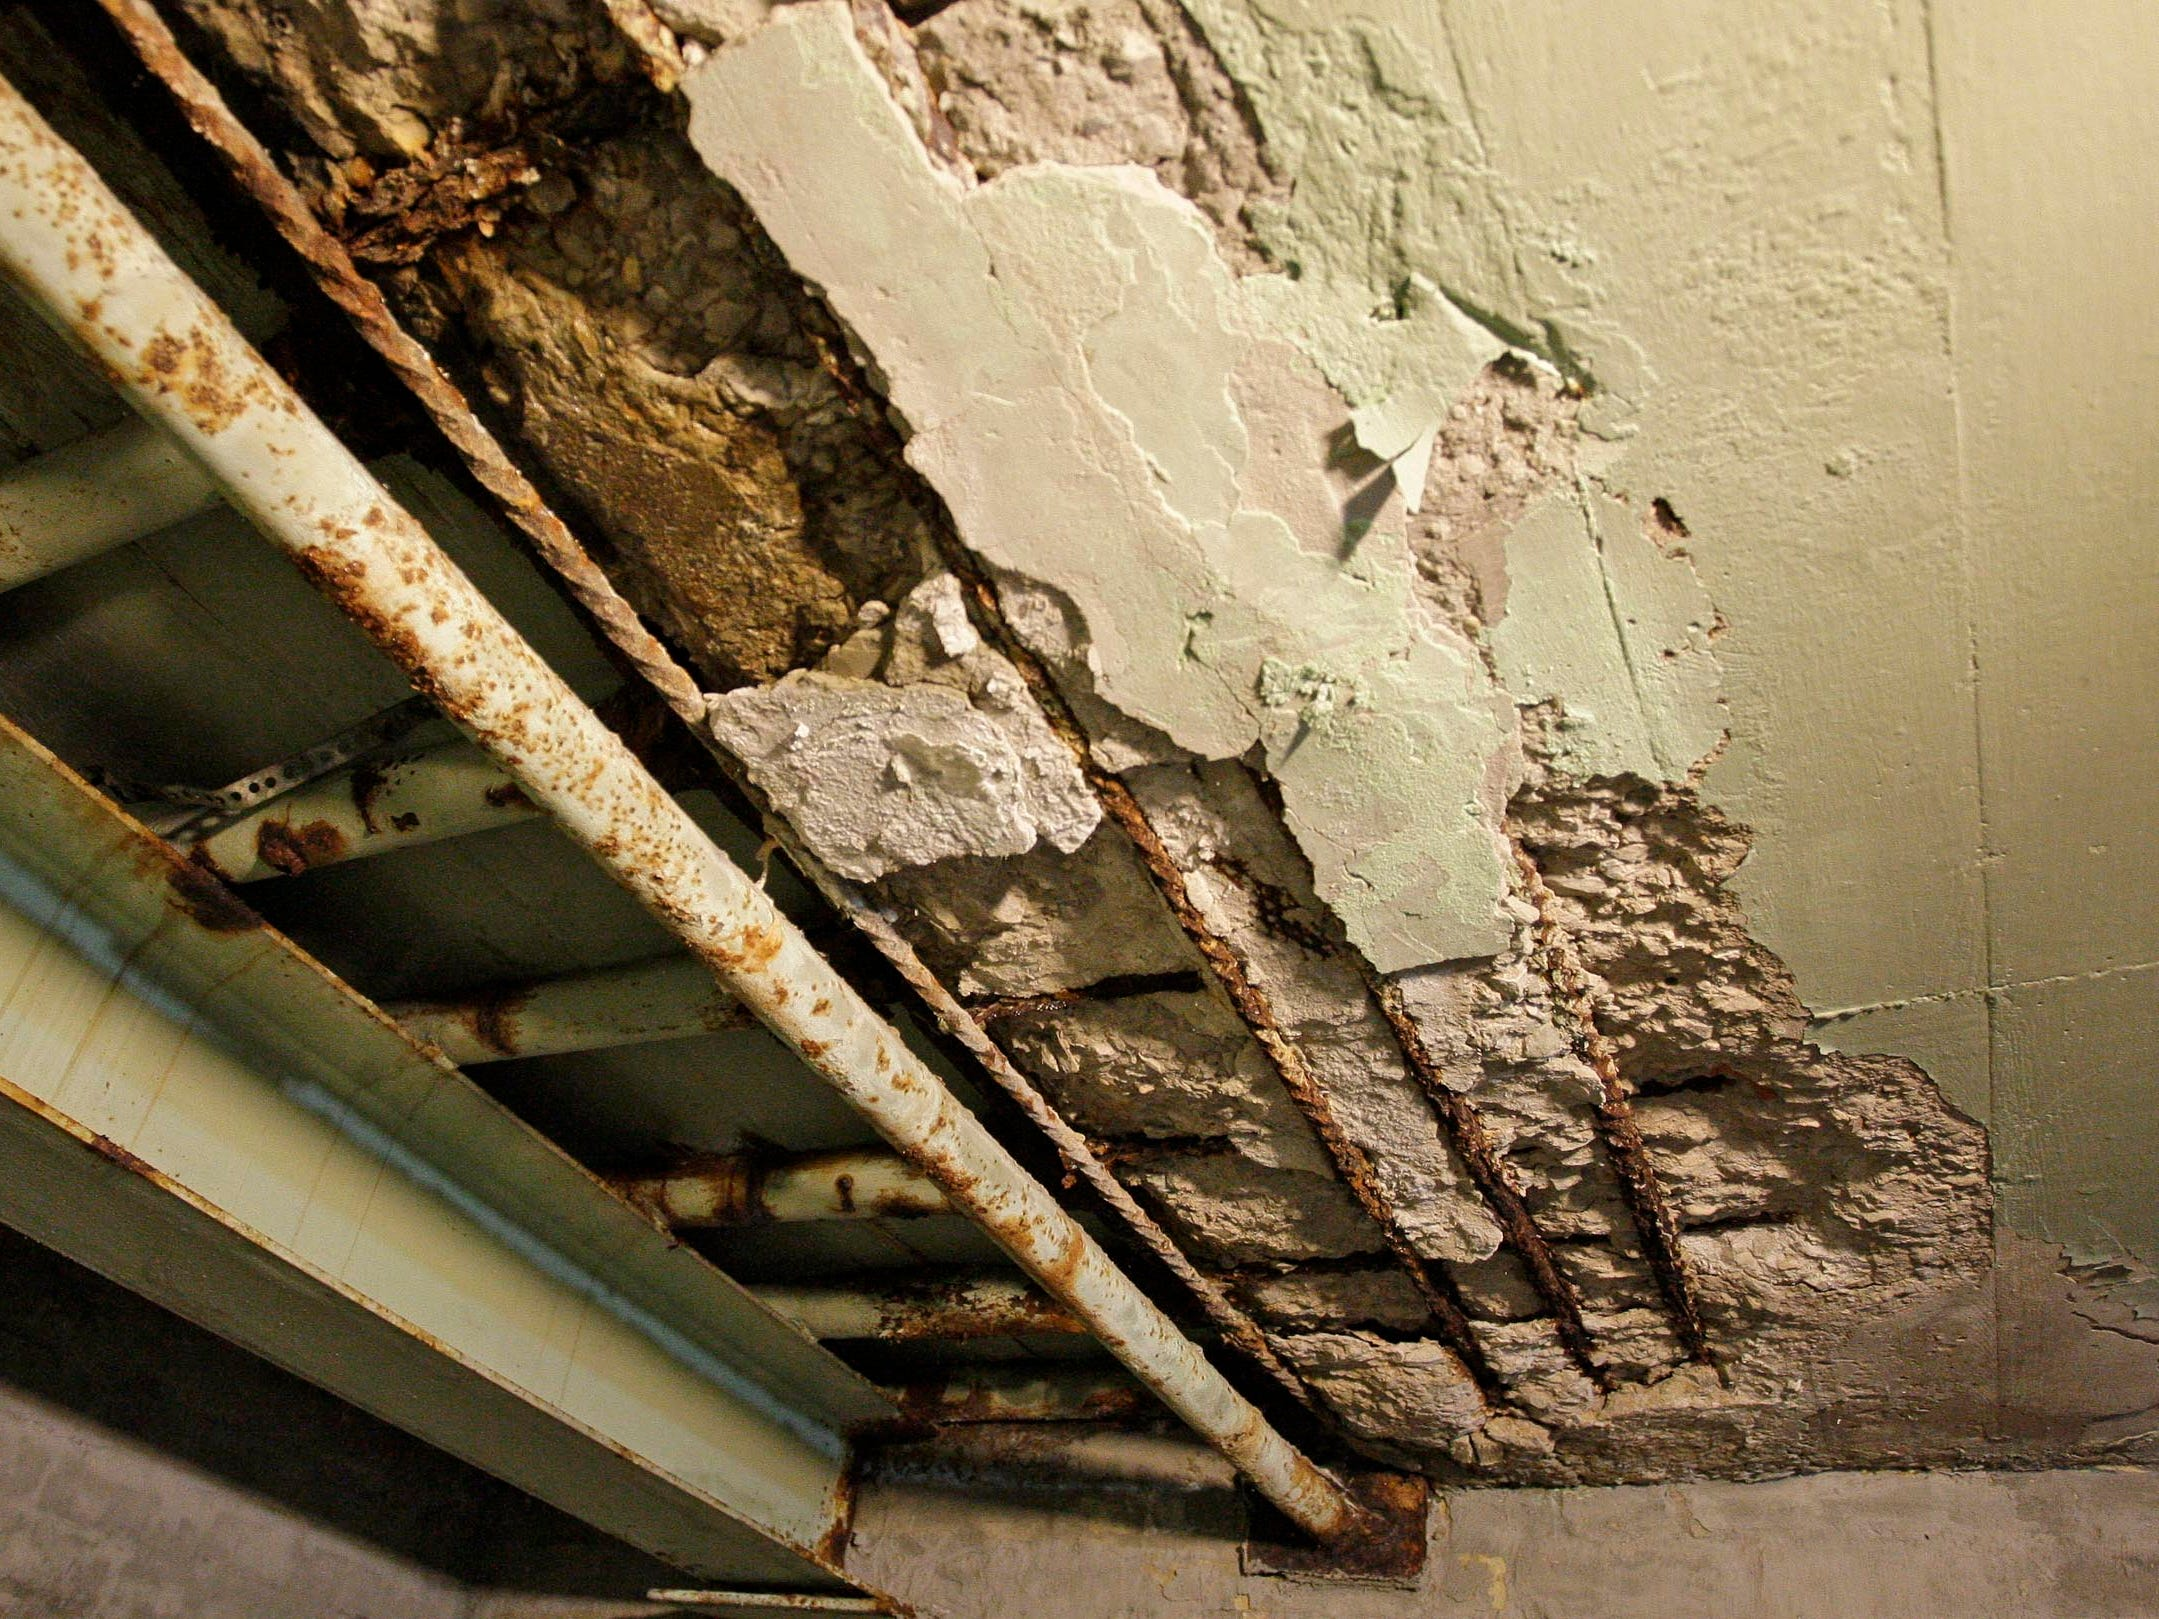 Water damage is evident in the basement area as seen, Thursday October 2, 2014, that is used for storage at Sheboygan City Hall.  The area used to be the coal bin when the city heated the building with coal fired boilers.